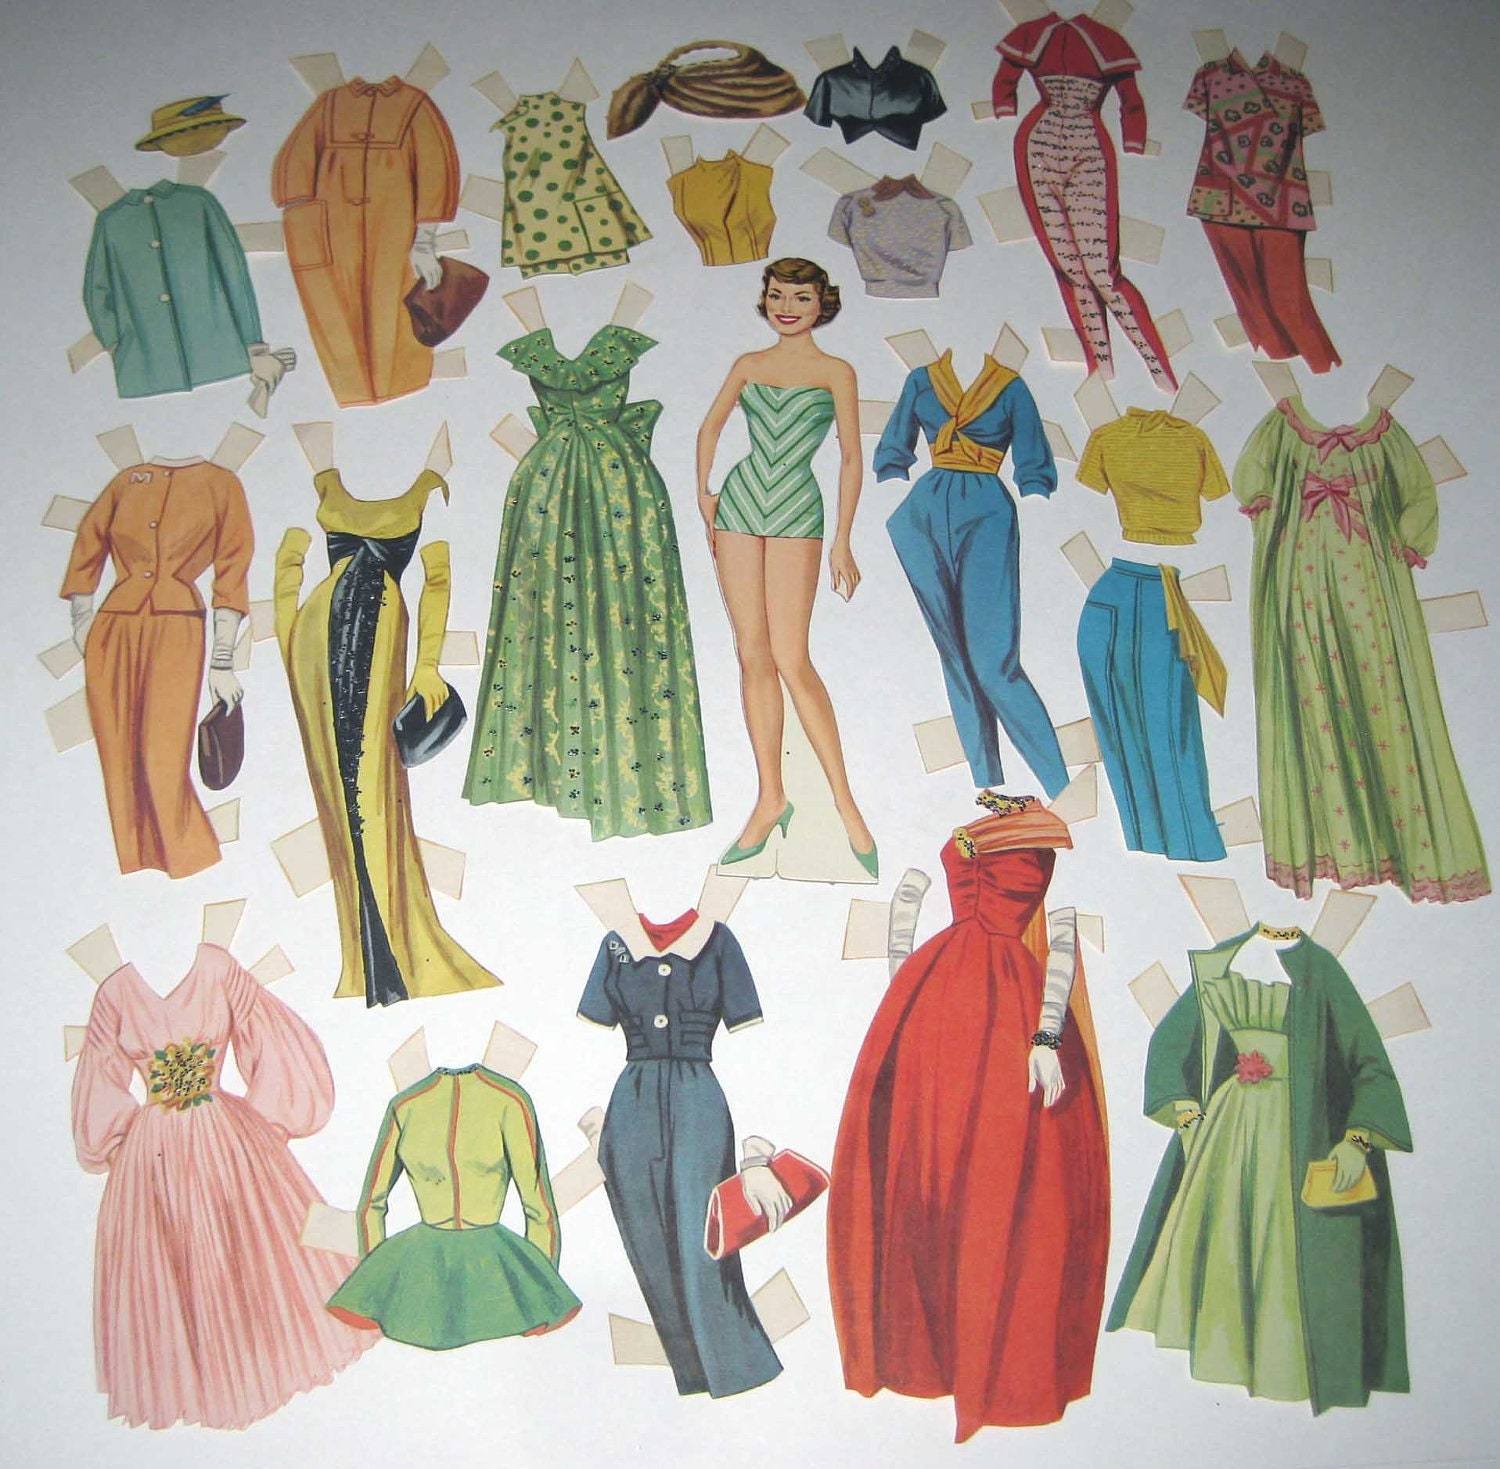 Vintage 1950s Paper Doll of Pretty Woman with Outfits Some with Glitter - grandmothersattic